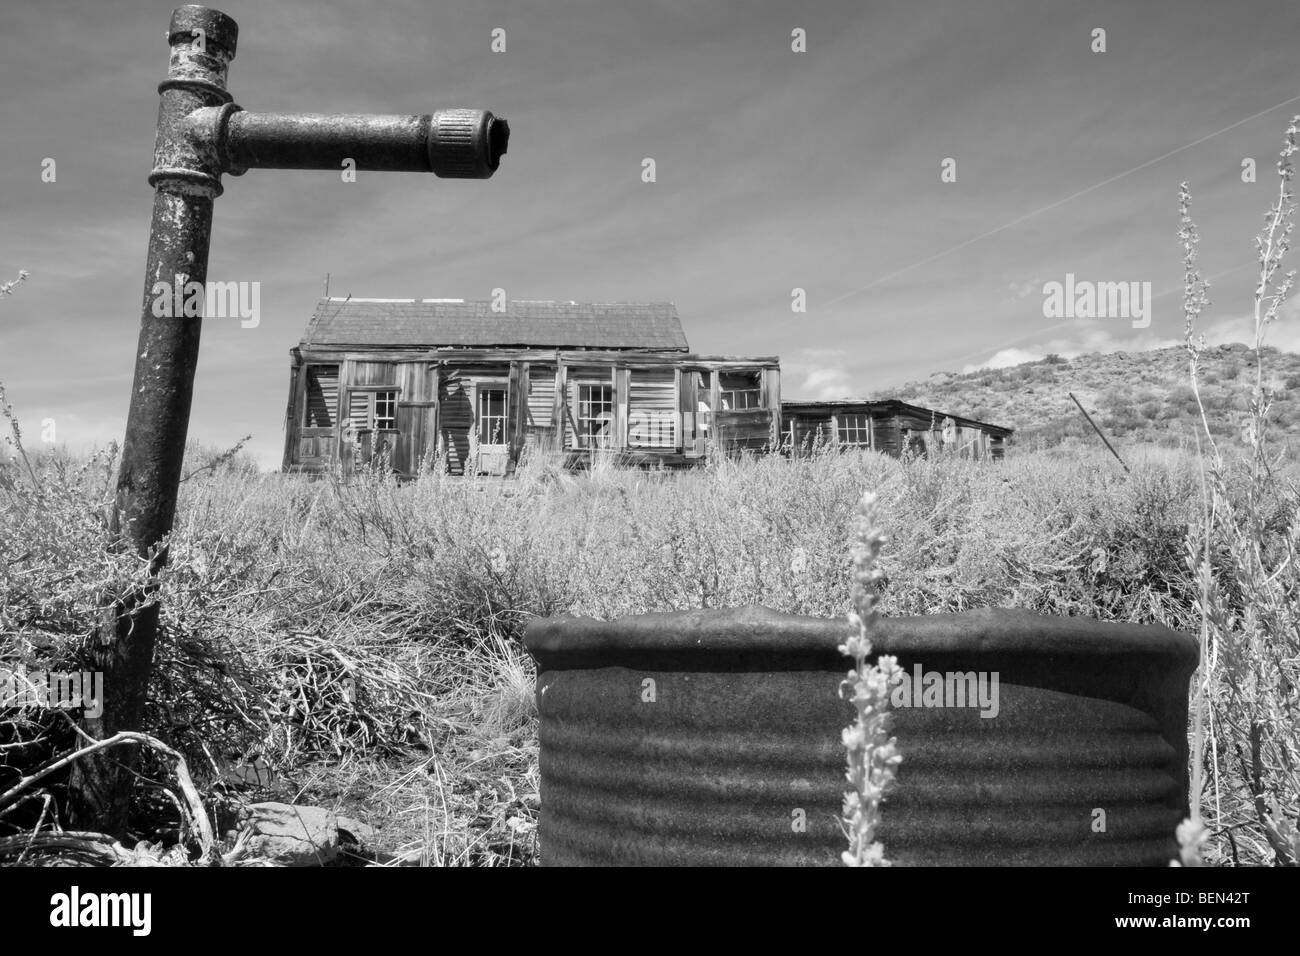 Dry well and spigot and abandoned homestead in the the ghost town of Bodie, CA - Stock Image